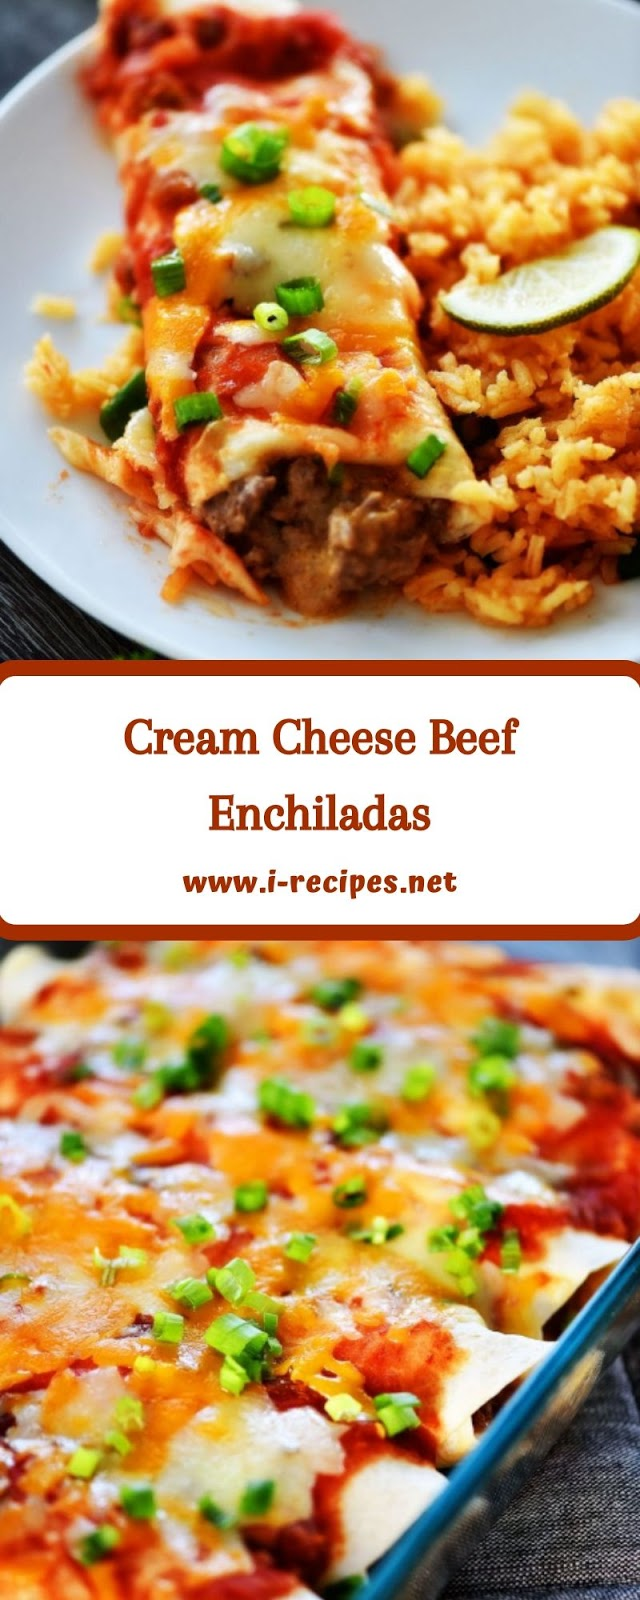 Cream Cheese Beef Enchiladas